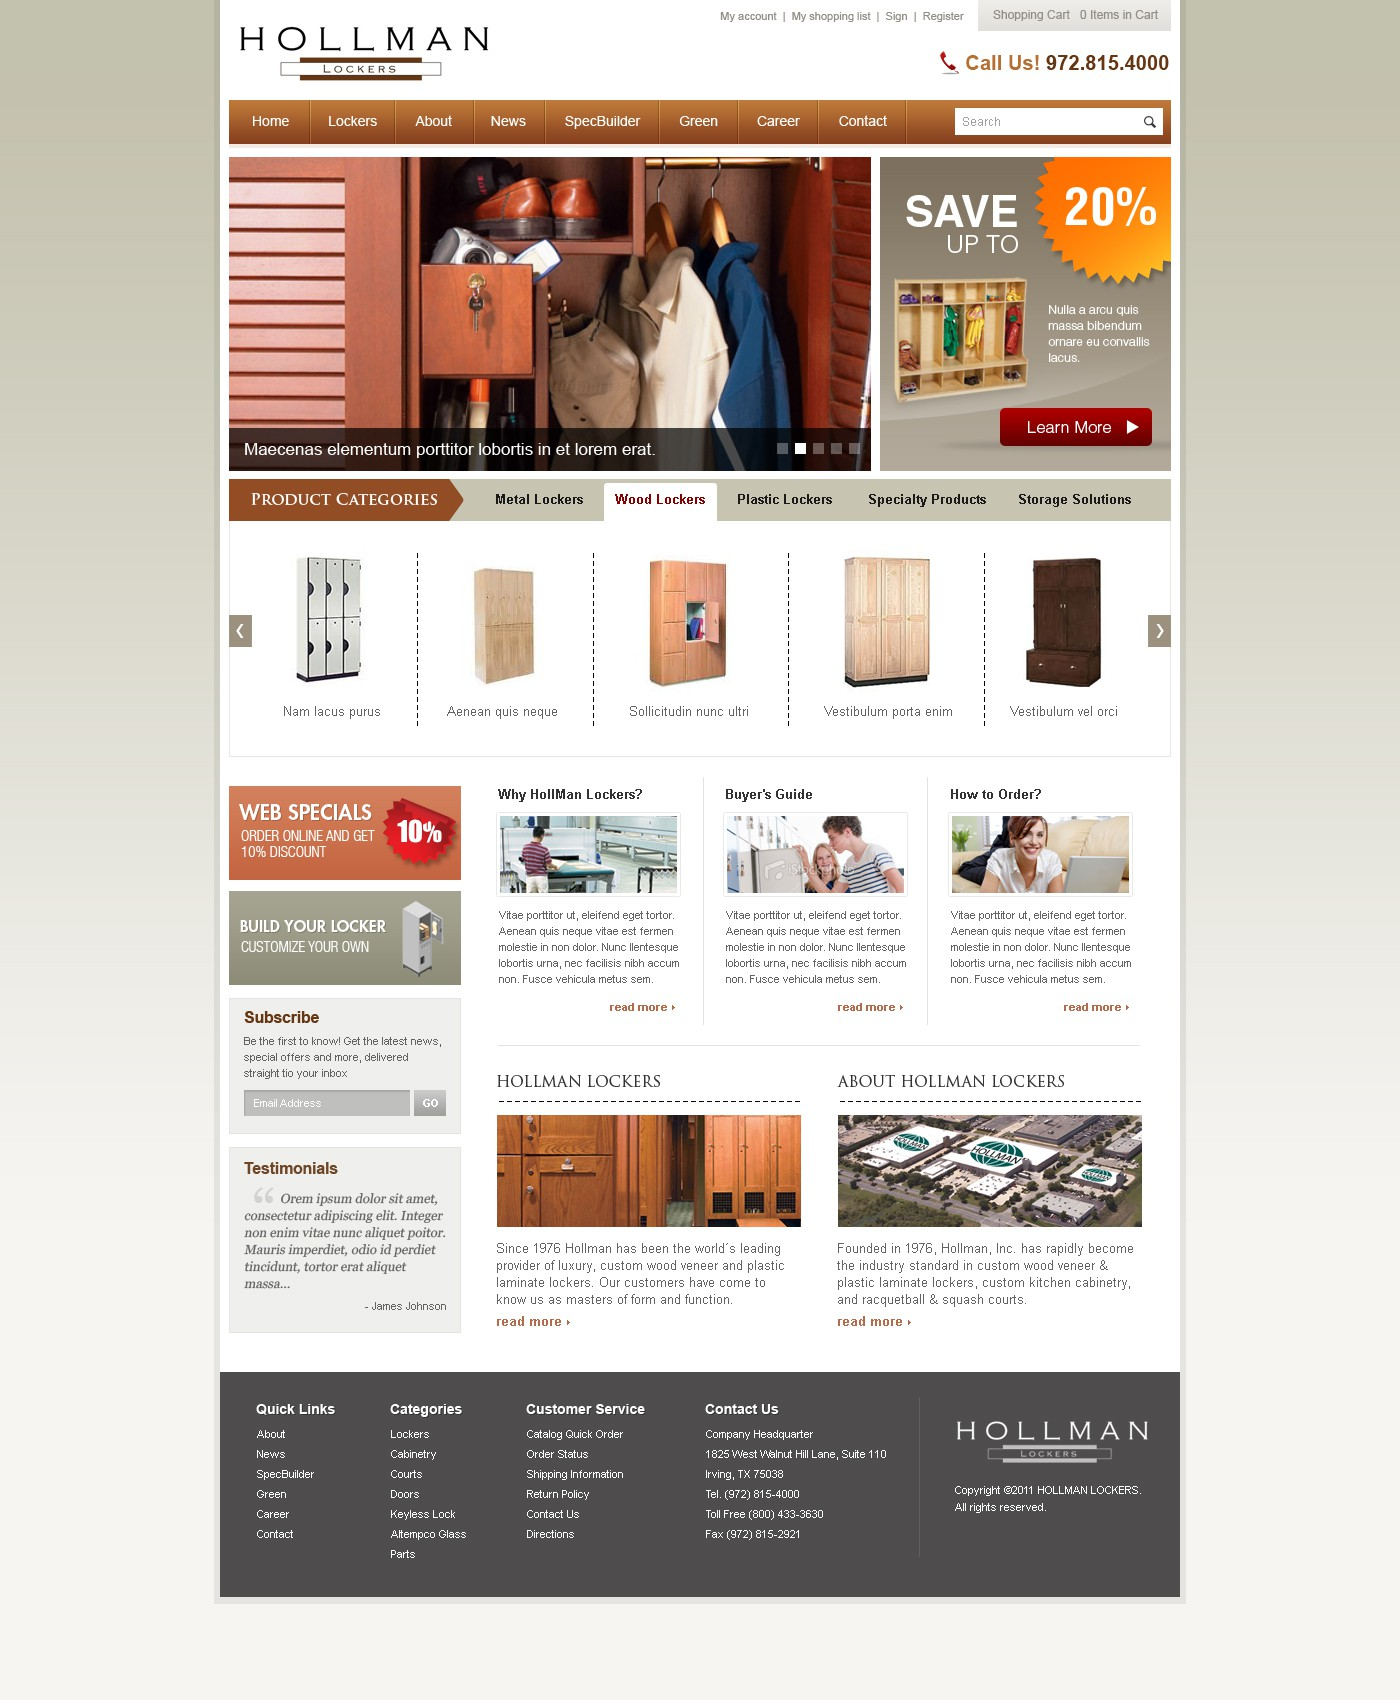 Hollman Lockers needs a new website design